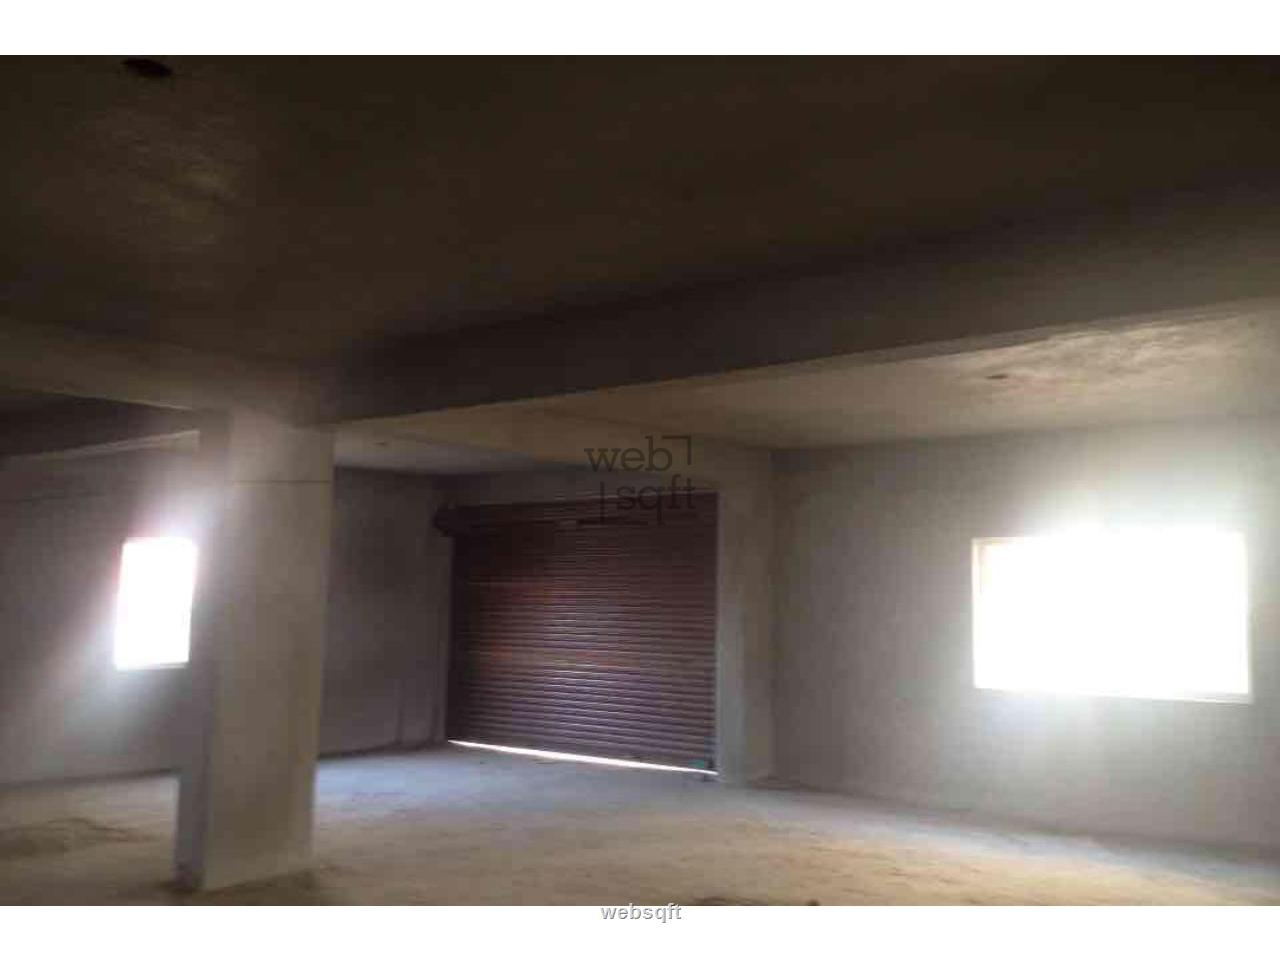 Websqft - Commercial Warehouse - Property for Rent - in 3500Sq-ft/Hitech city at Rs 140000